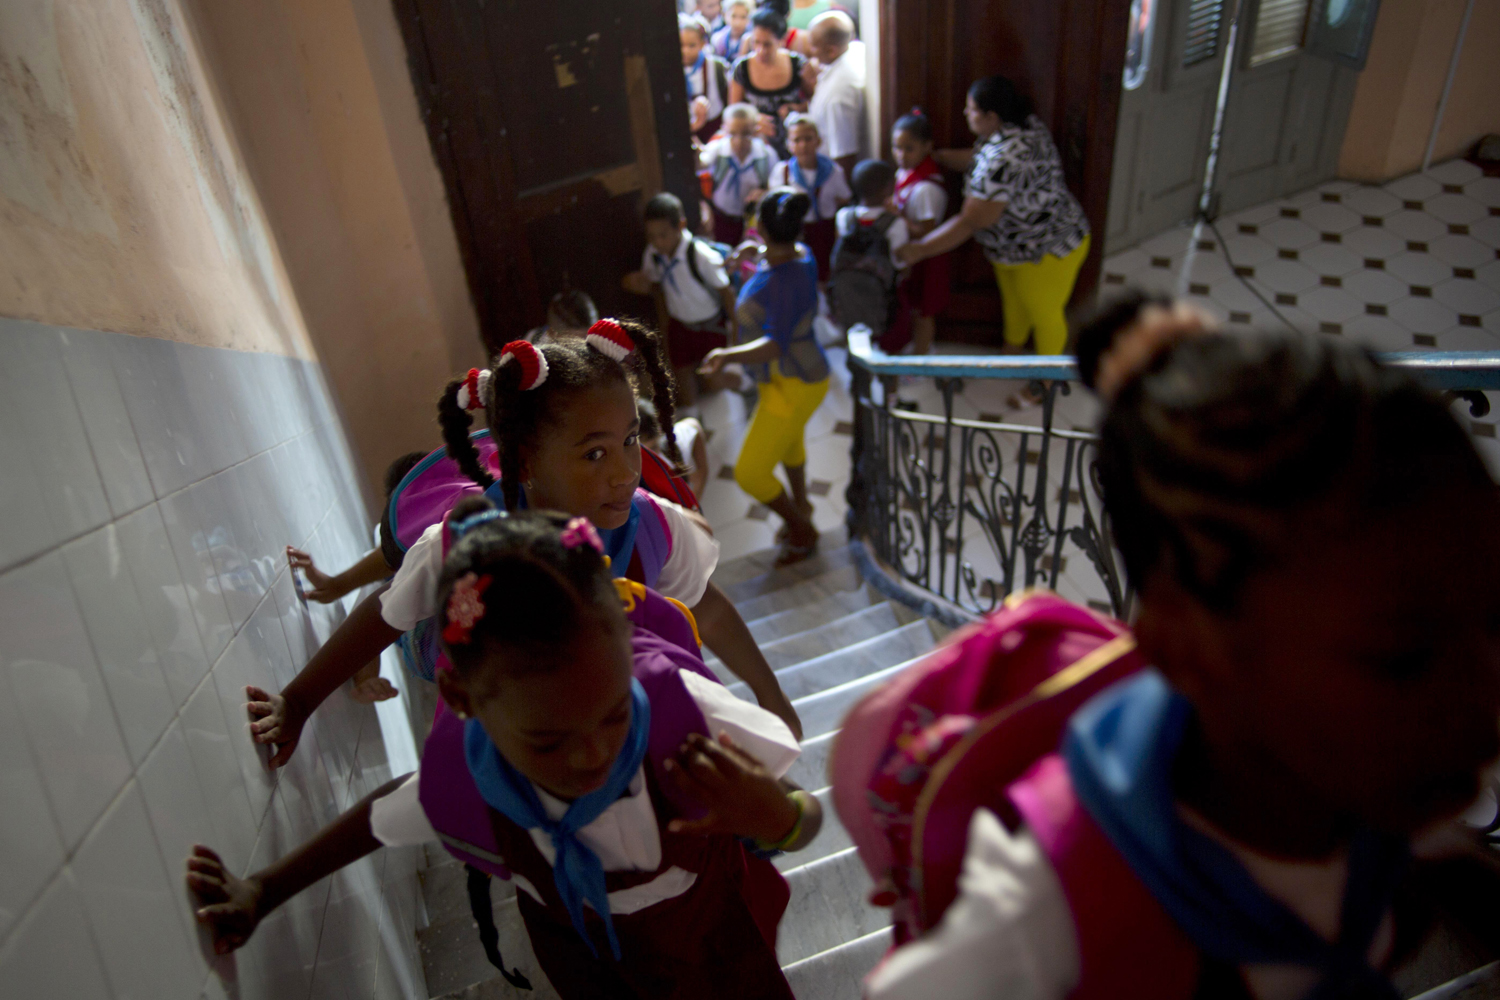 Sept. 1, 2014. Students walk up the stairs to their classrooms inside the Angela Landa elementary school the Old Havana, Cuba. Monday marks the first day back to class for students across Cuba.